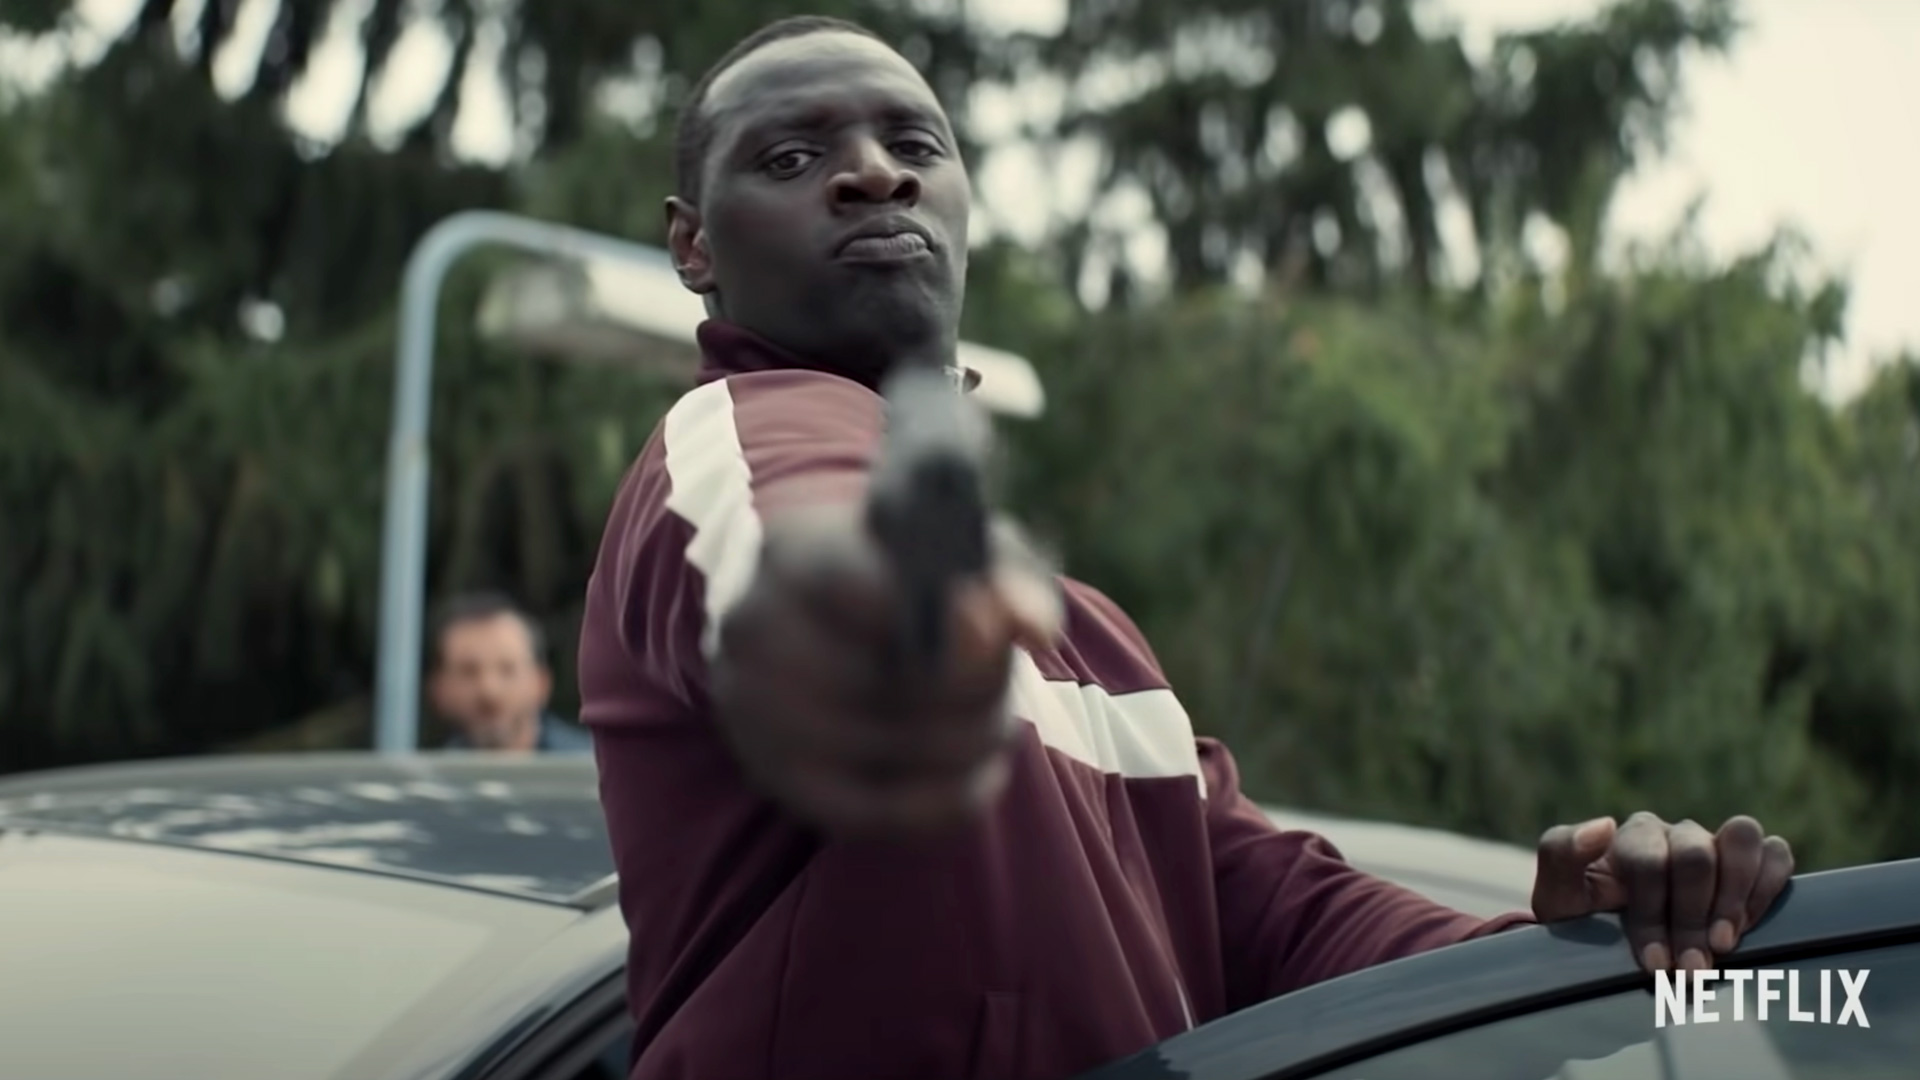 Omar Sy points a gun toward the camera in a scene from the French heist thriller Lupin.